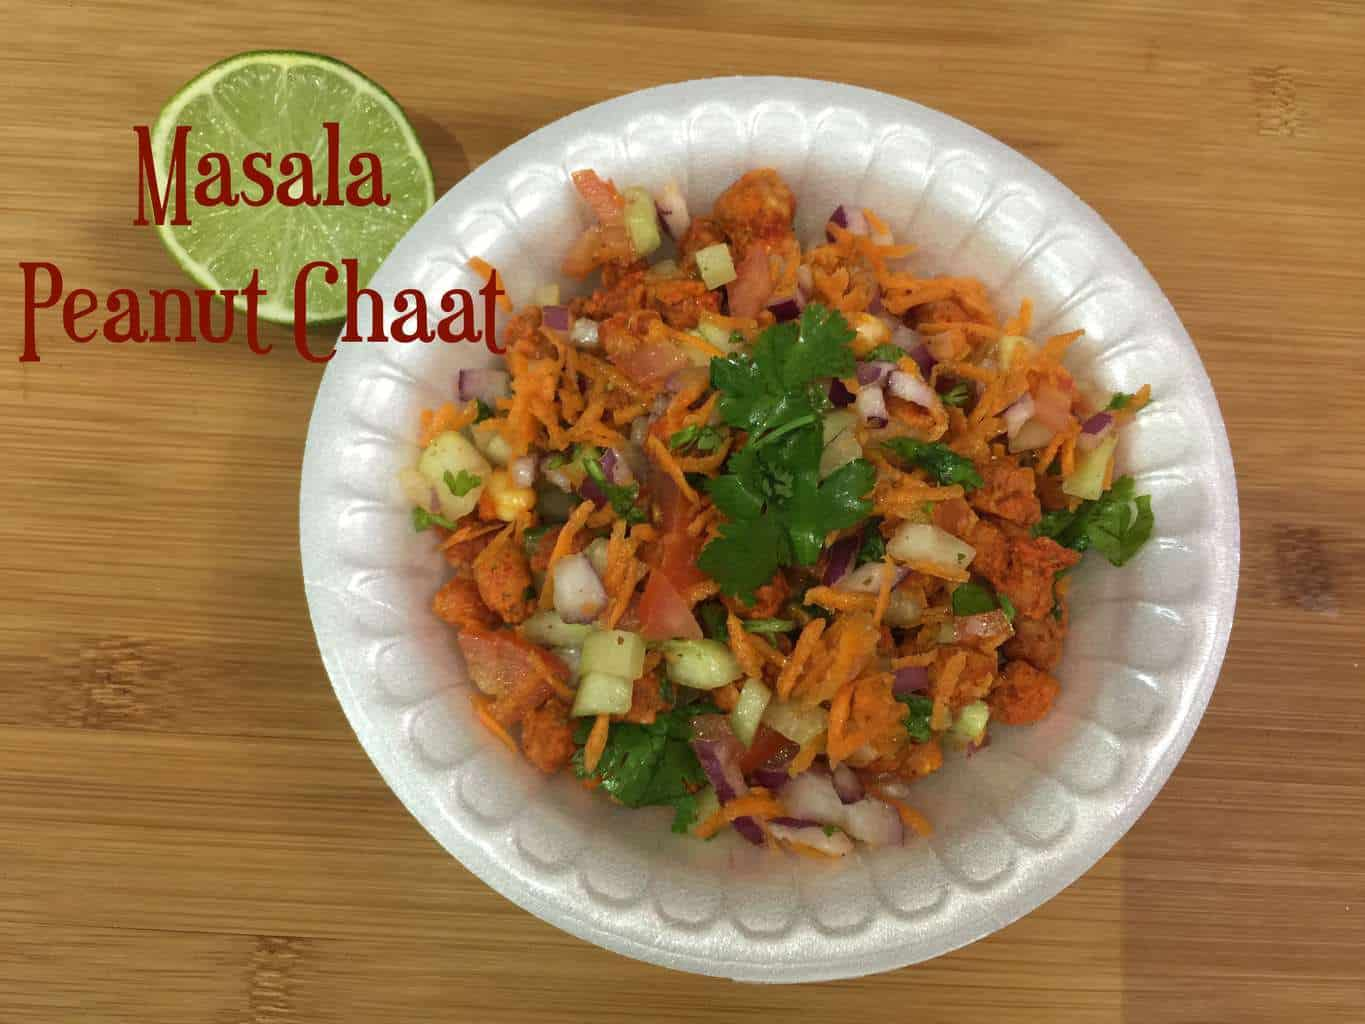 Masala Peanuts Chaat is one of our favorite tea time snack which can be made using masala peanuts,finely chopped vegetables and few spices in less time and its very healthy too